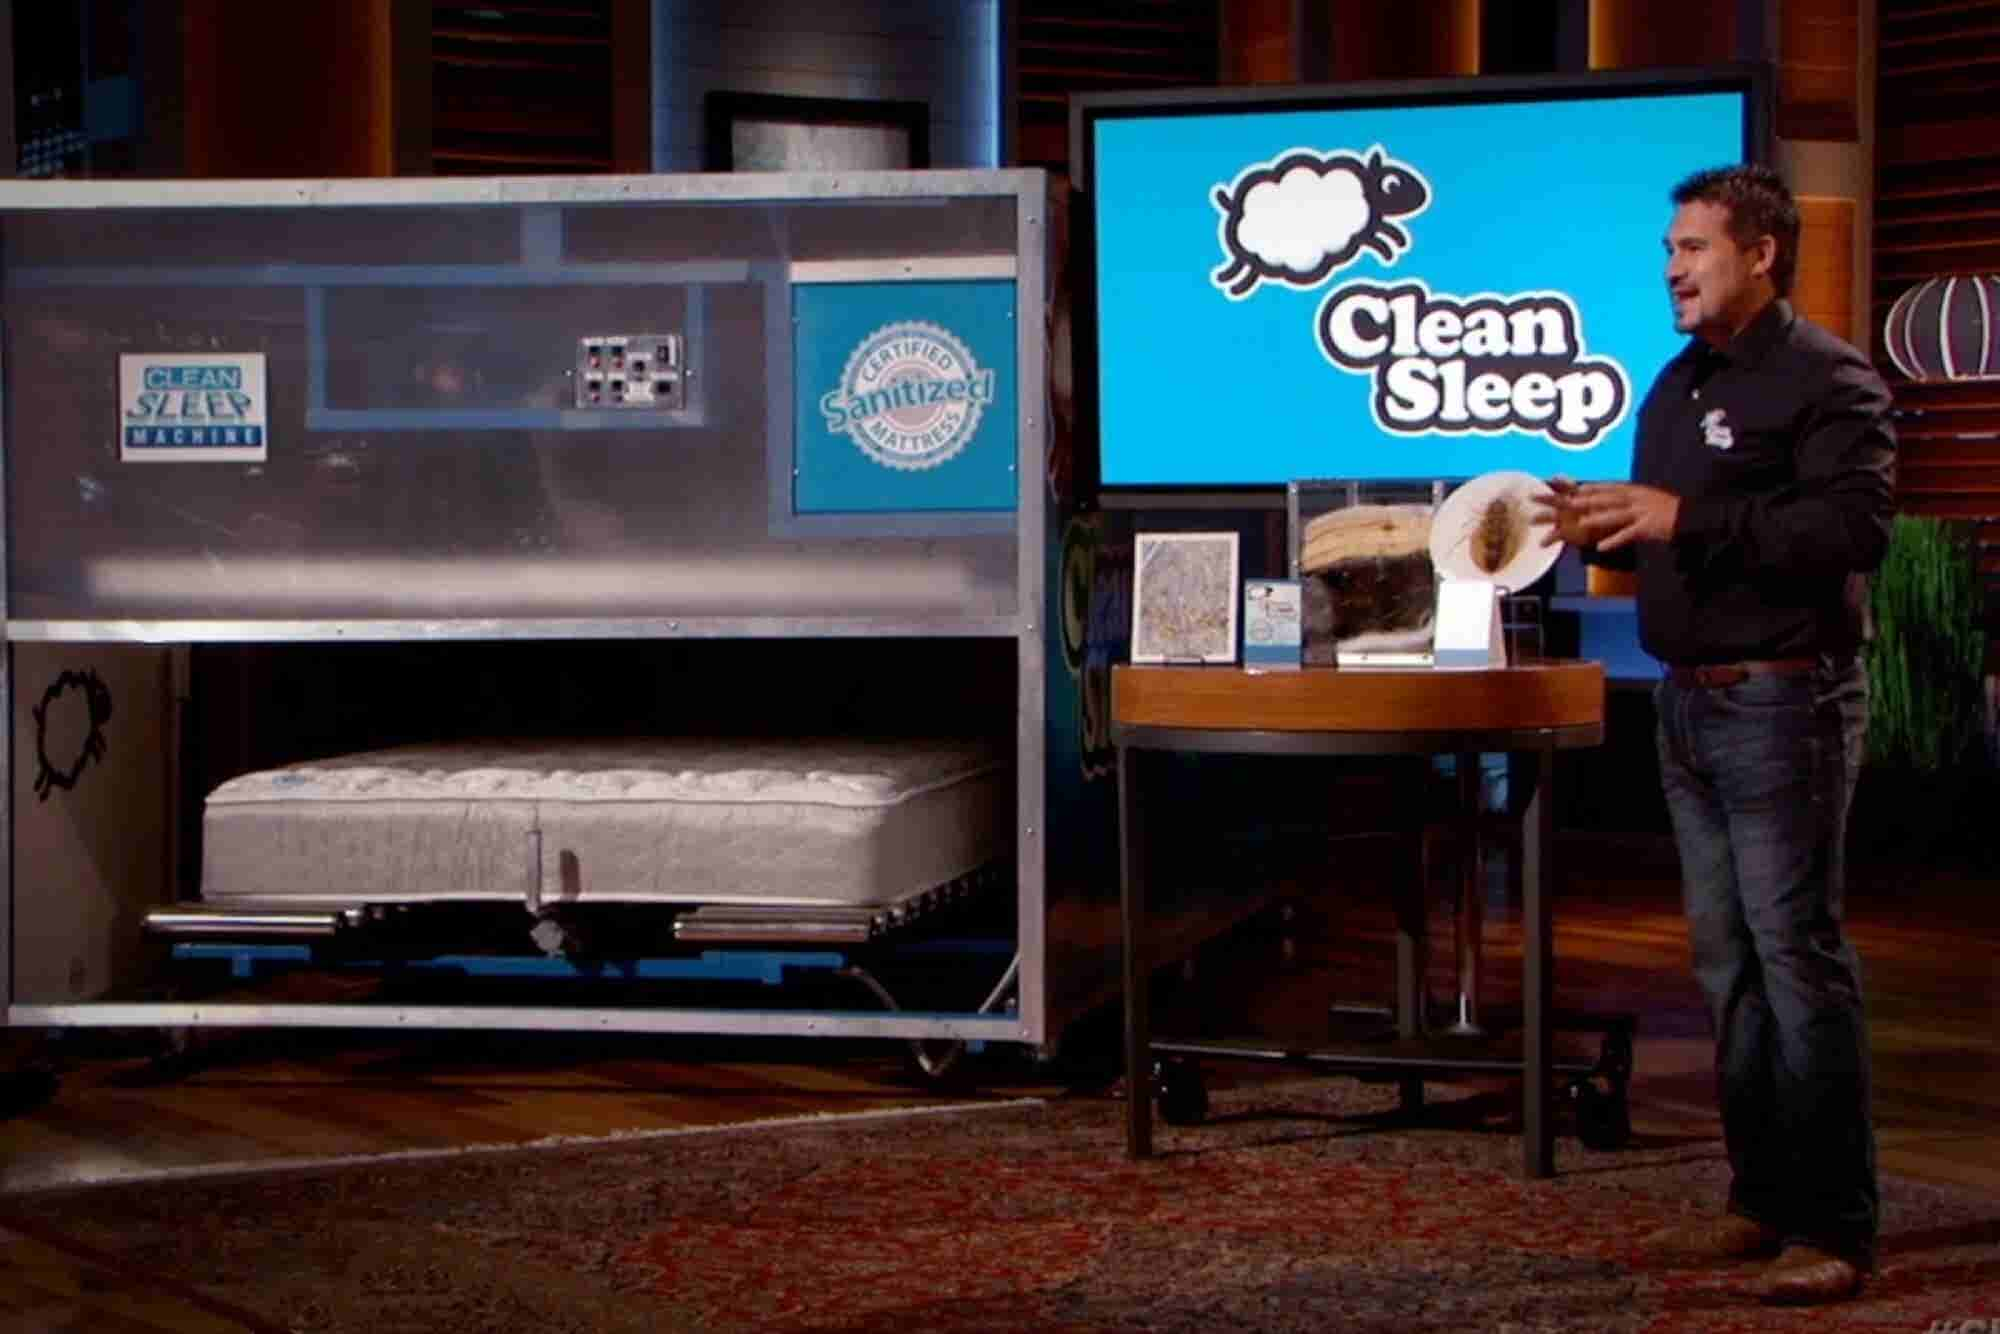 Exclusive: Watch This Entrepreneur's Emotional Shark Tank Pitch Before It Airs on TV